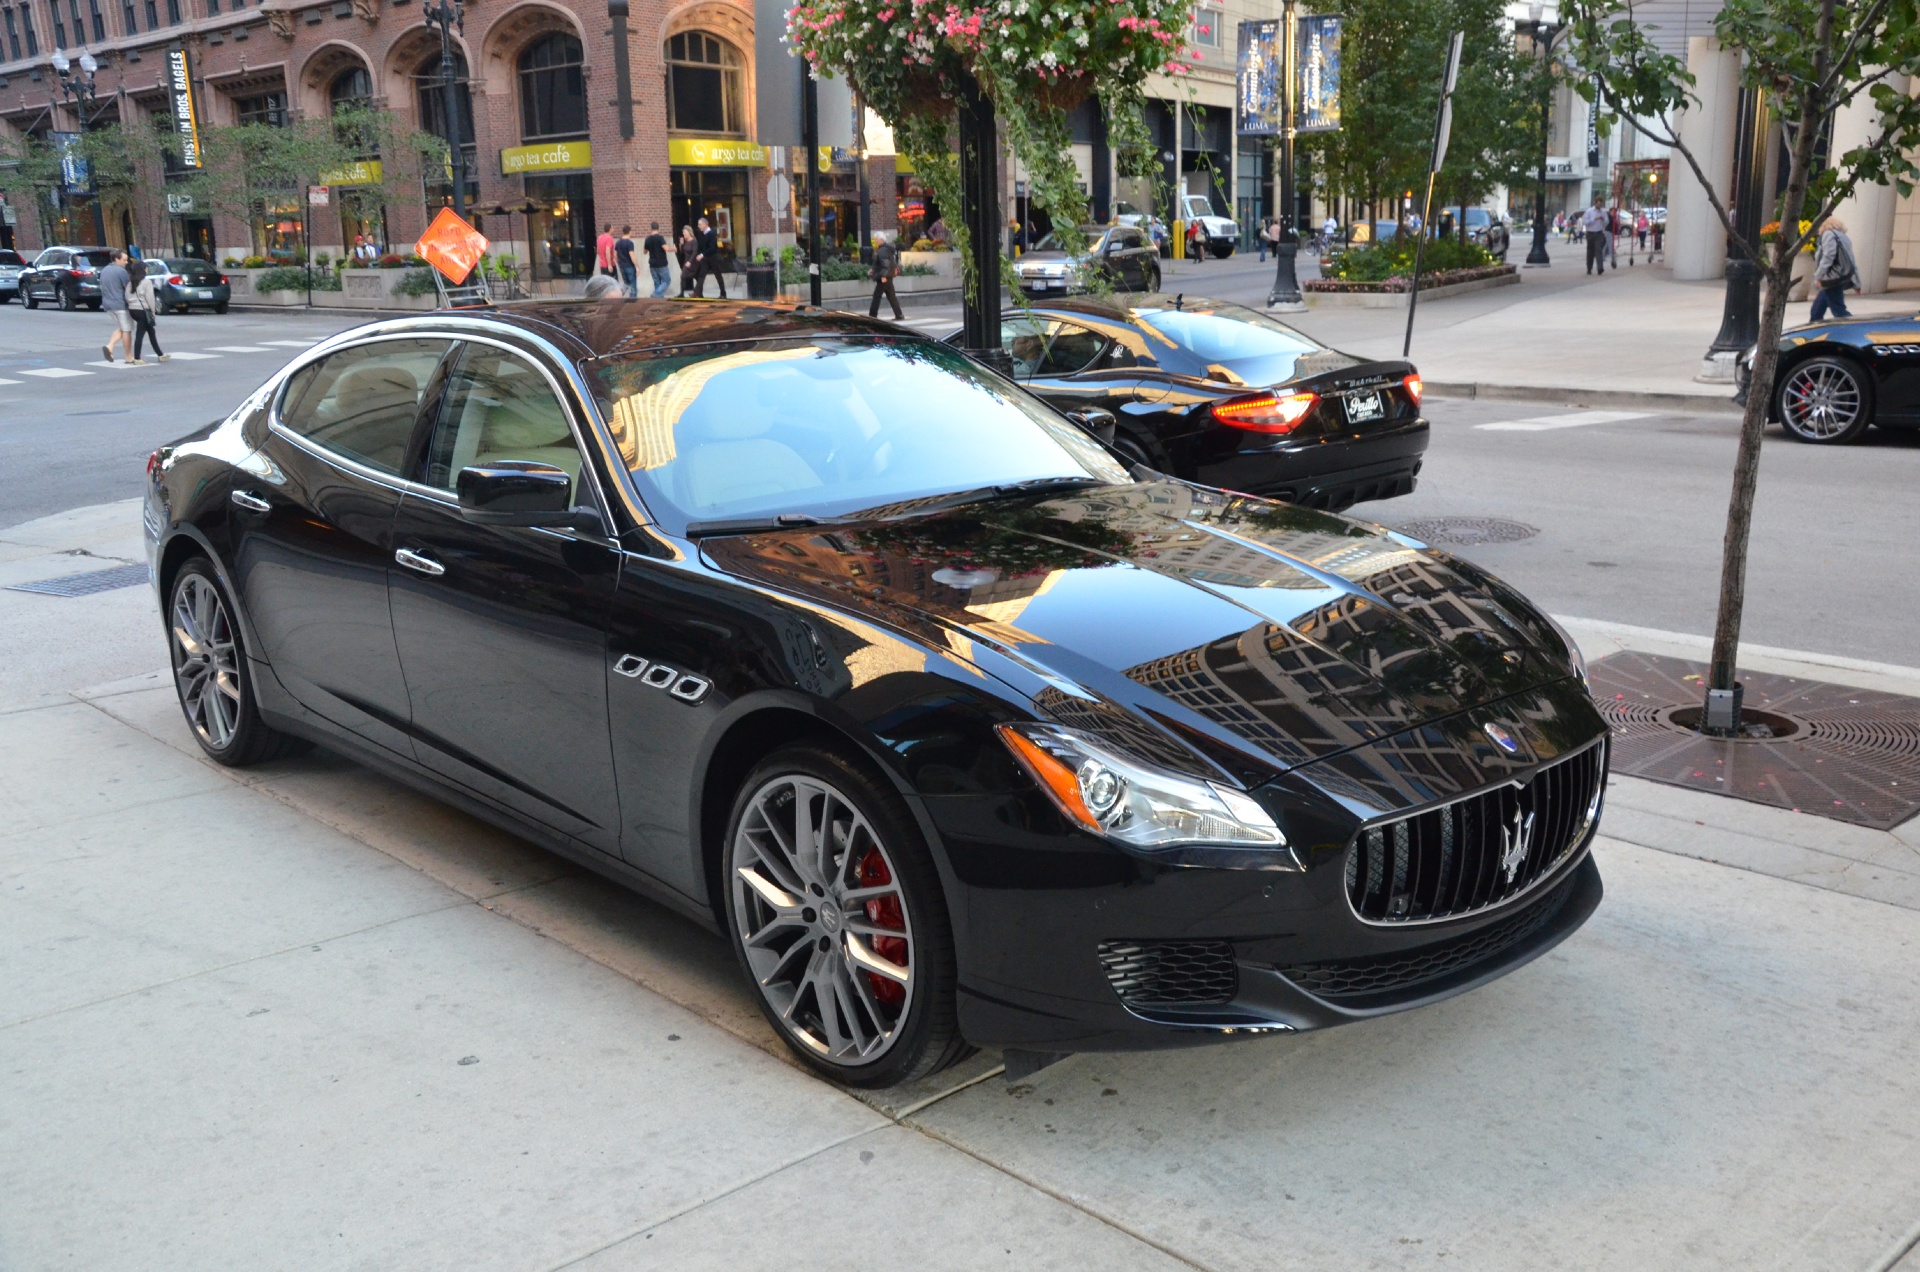 2014 maserati quattroporte s q4 s q4 stock m172 s for sale near chicago il il maserati dealer. Black Bedroom Furniture Sets. Home Design Ideas